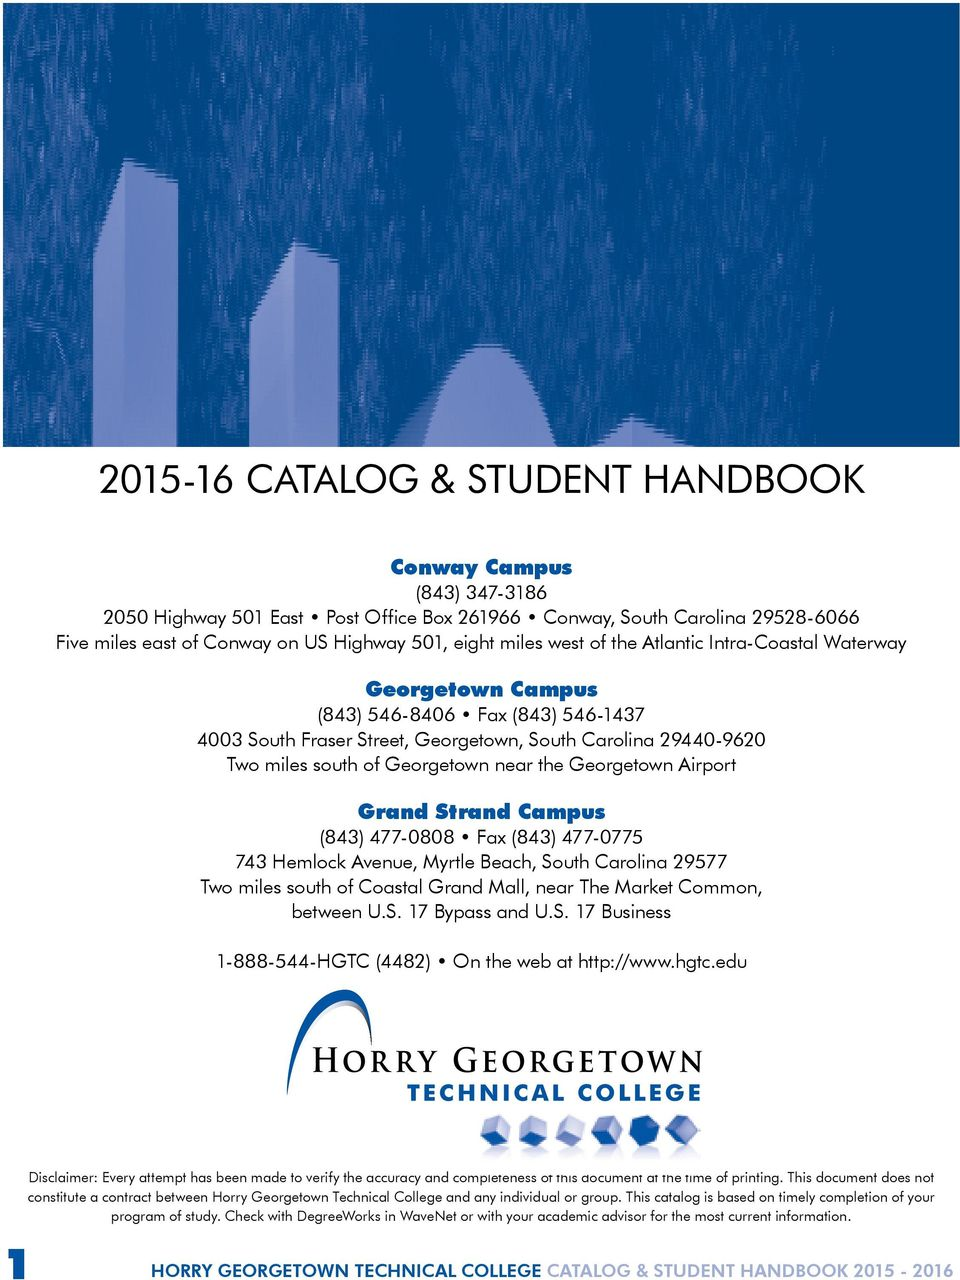 Hgtc Grand Strand Campus Map.Catalog Student Handbook Pdf